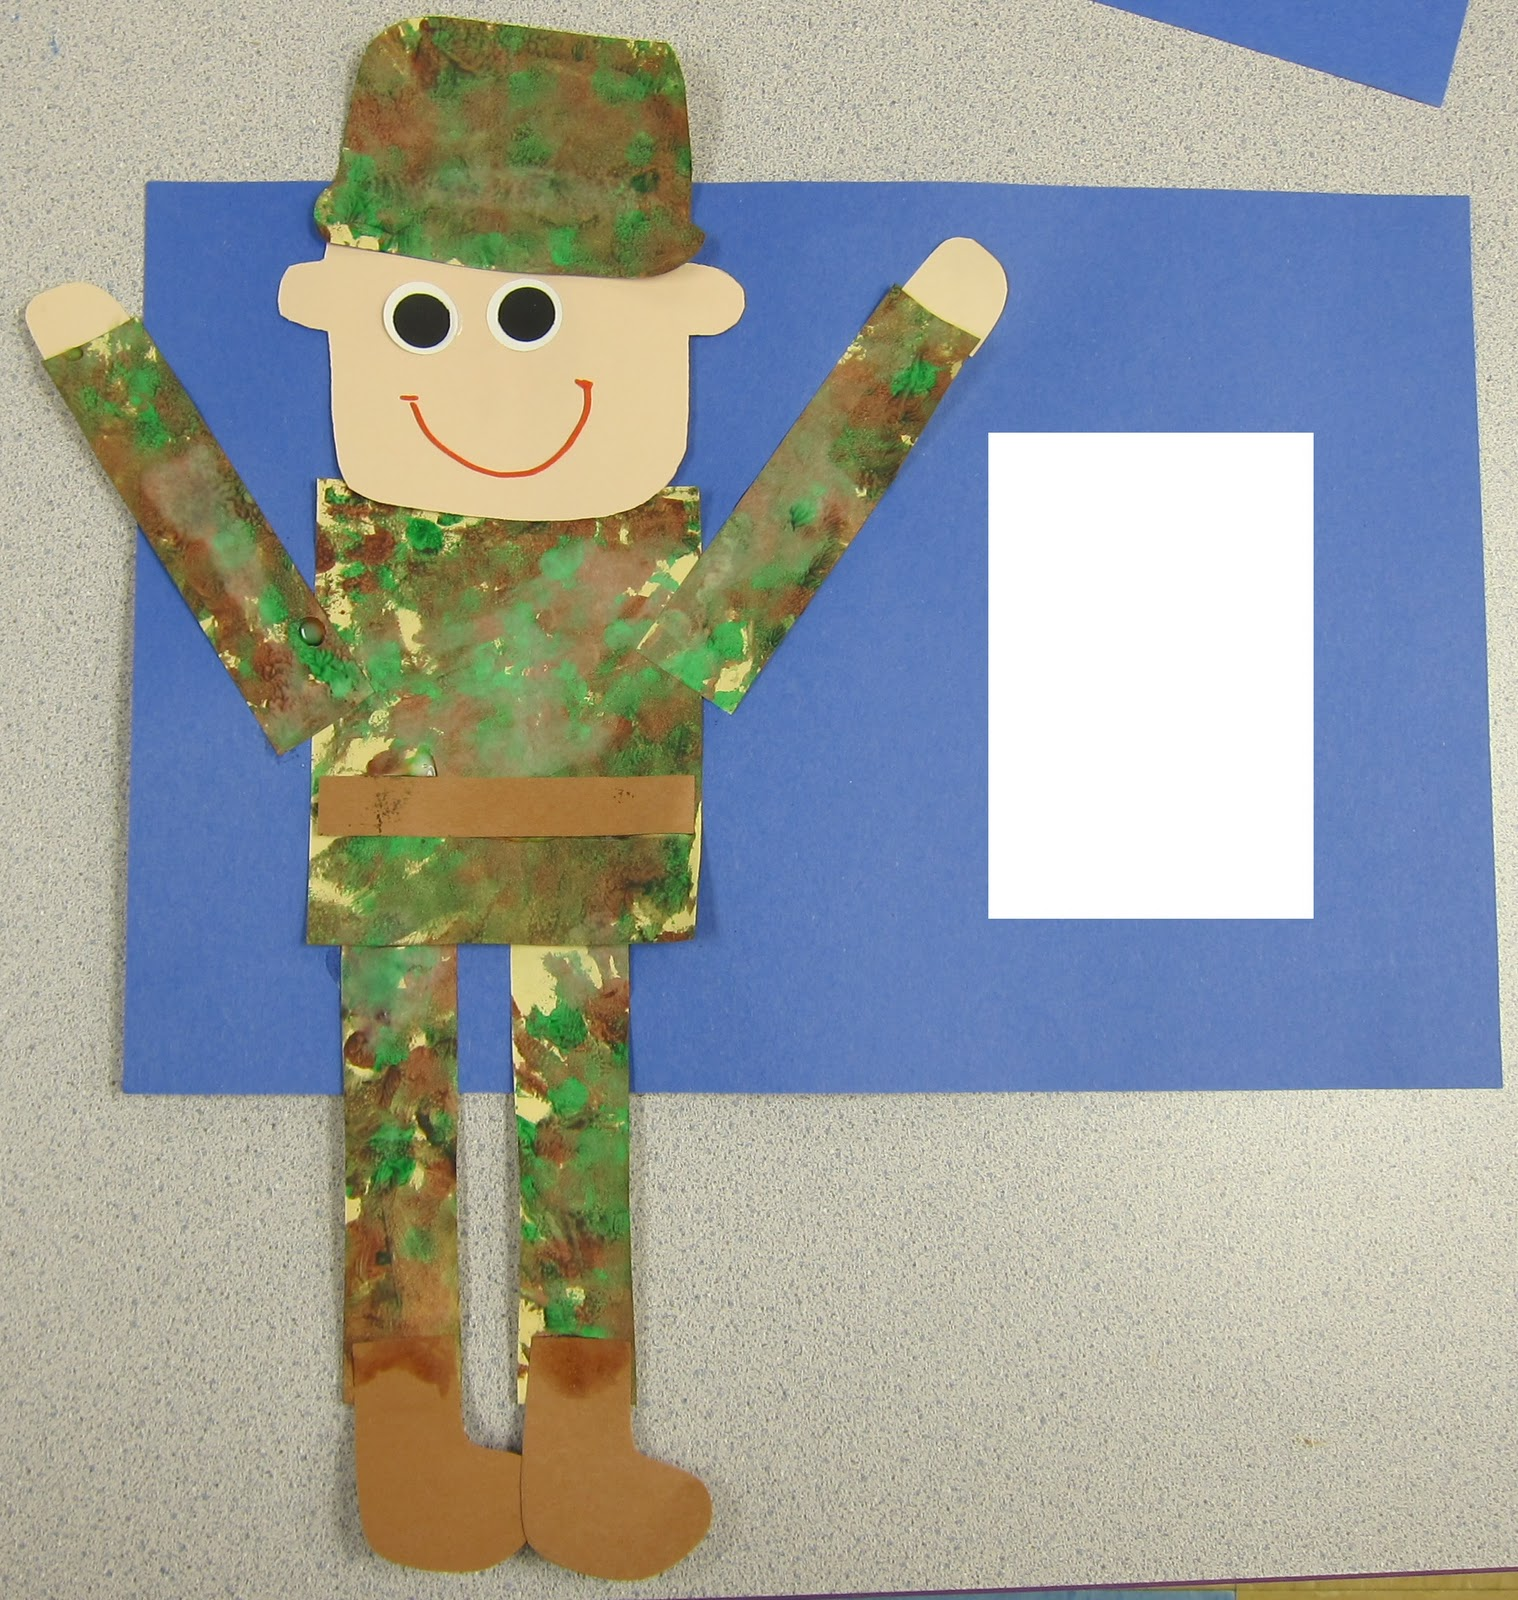 mrs karen 39 s preschool ideas veteran 39 s day 2011 On veterans day crafts for preschoolers